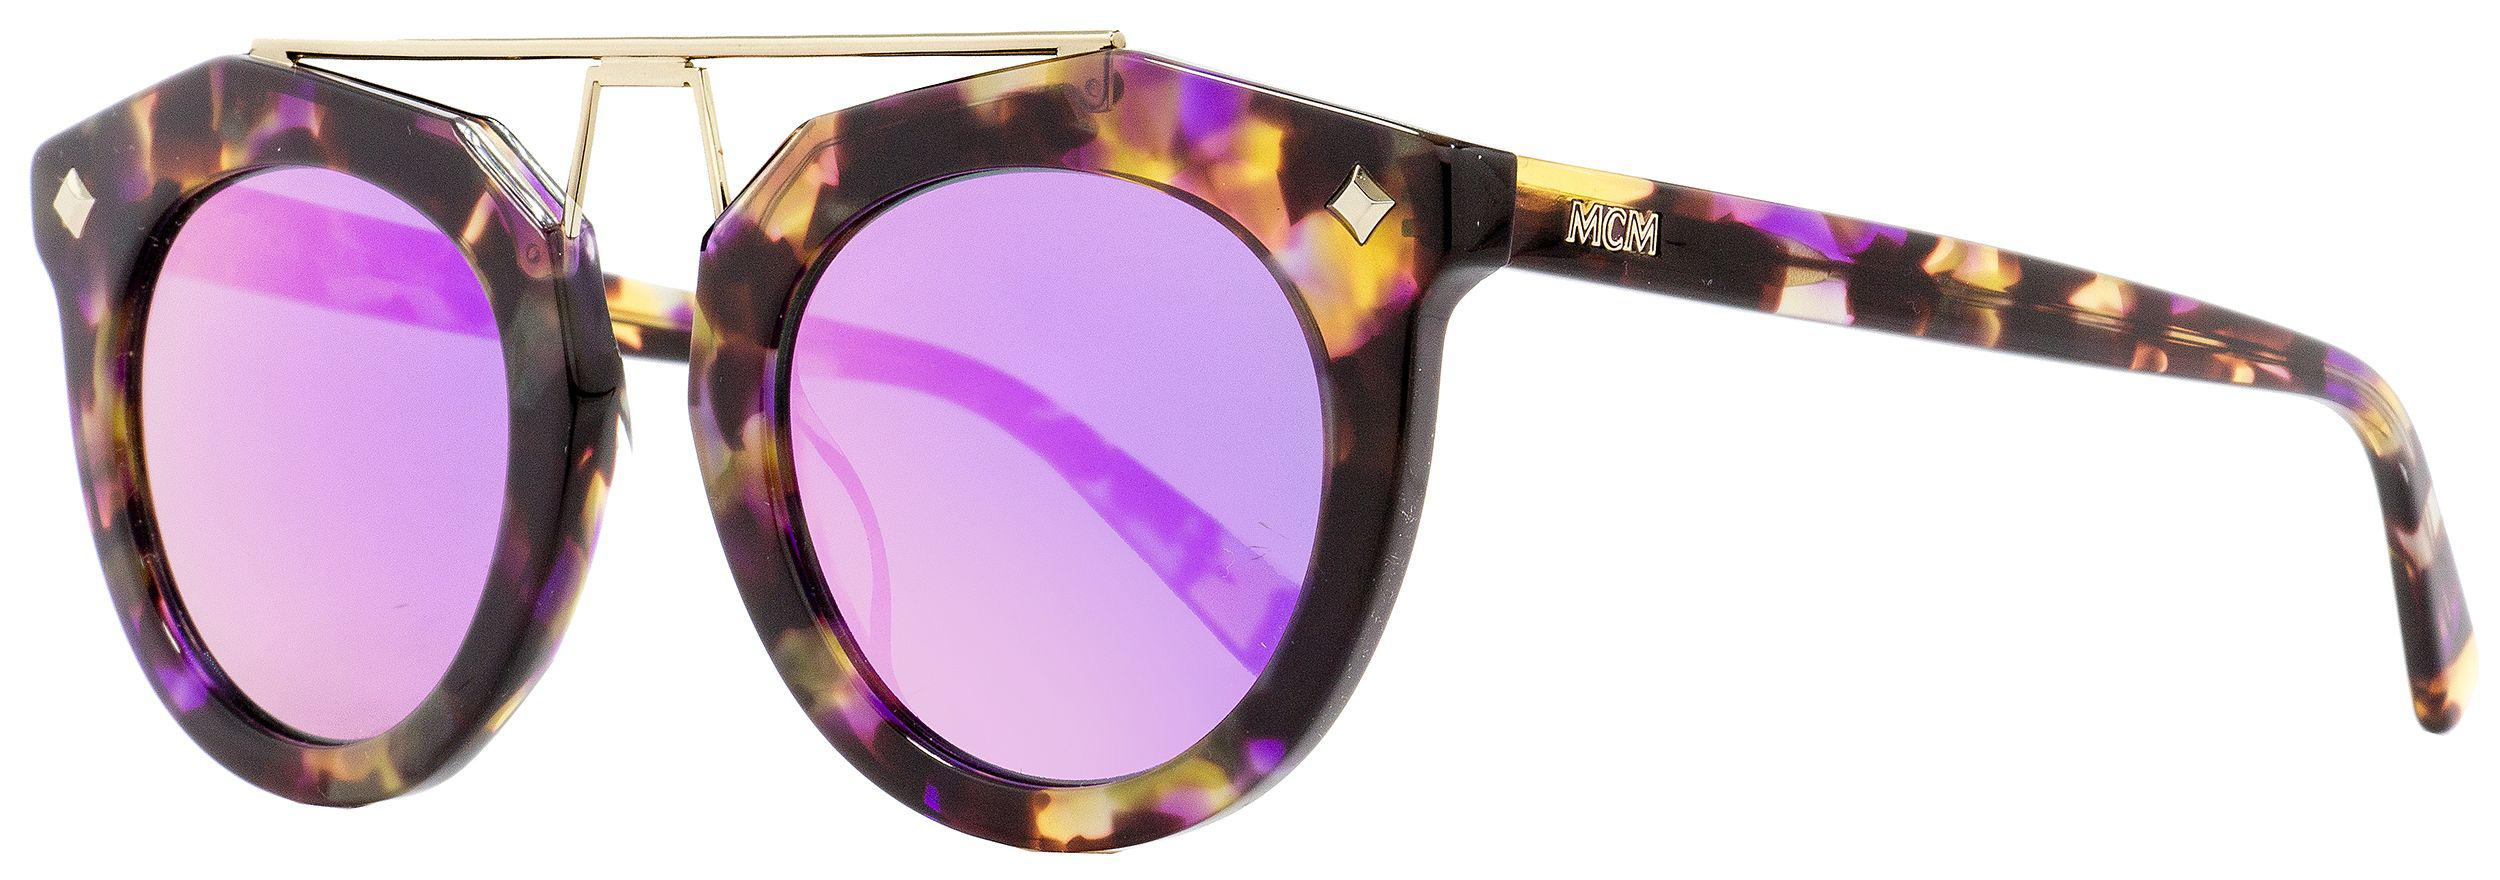 3e8c9861256 Lyst - Mcm Oval Sunglasses 636s 236 Havana Violet gold 49mm 636 in ...